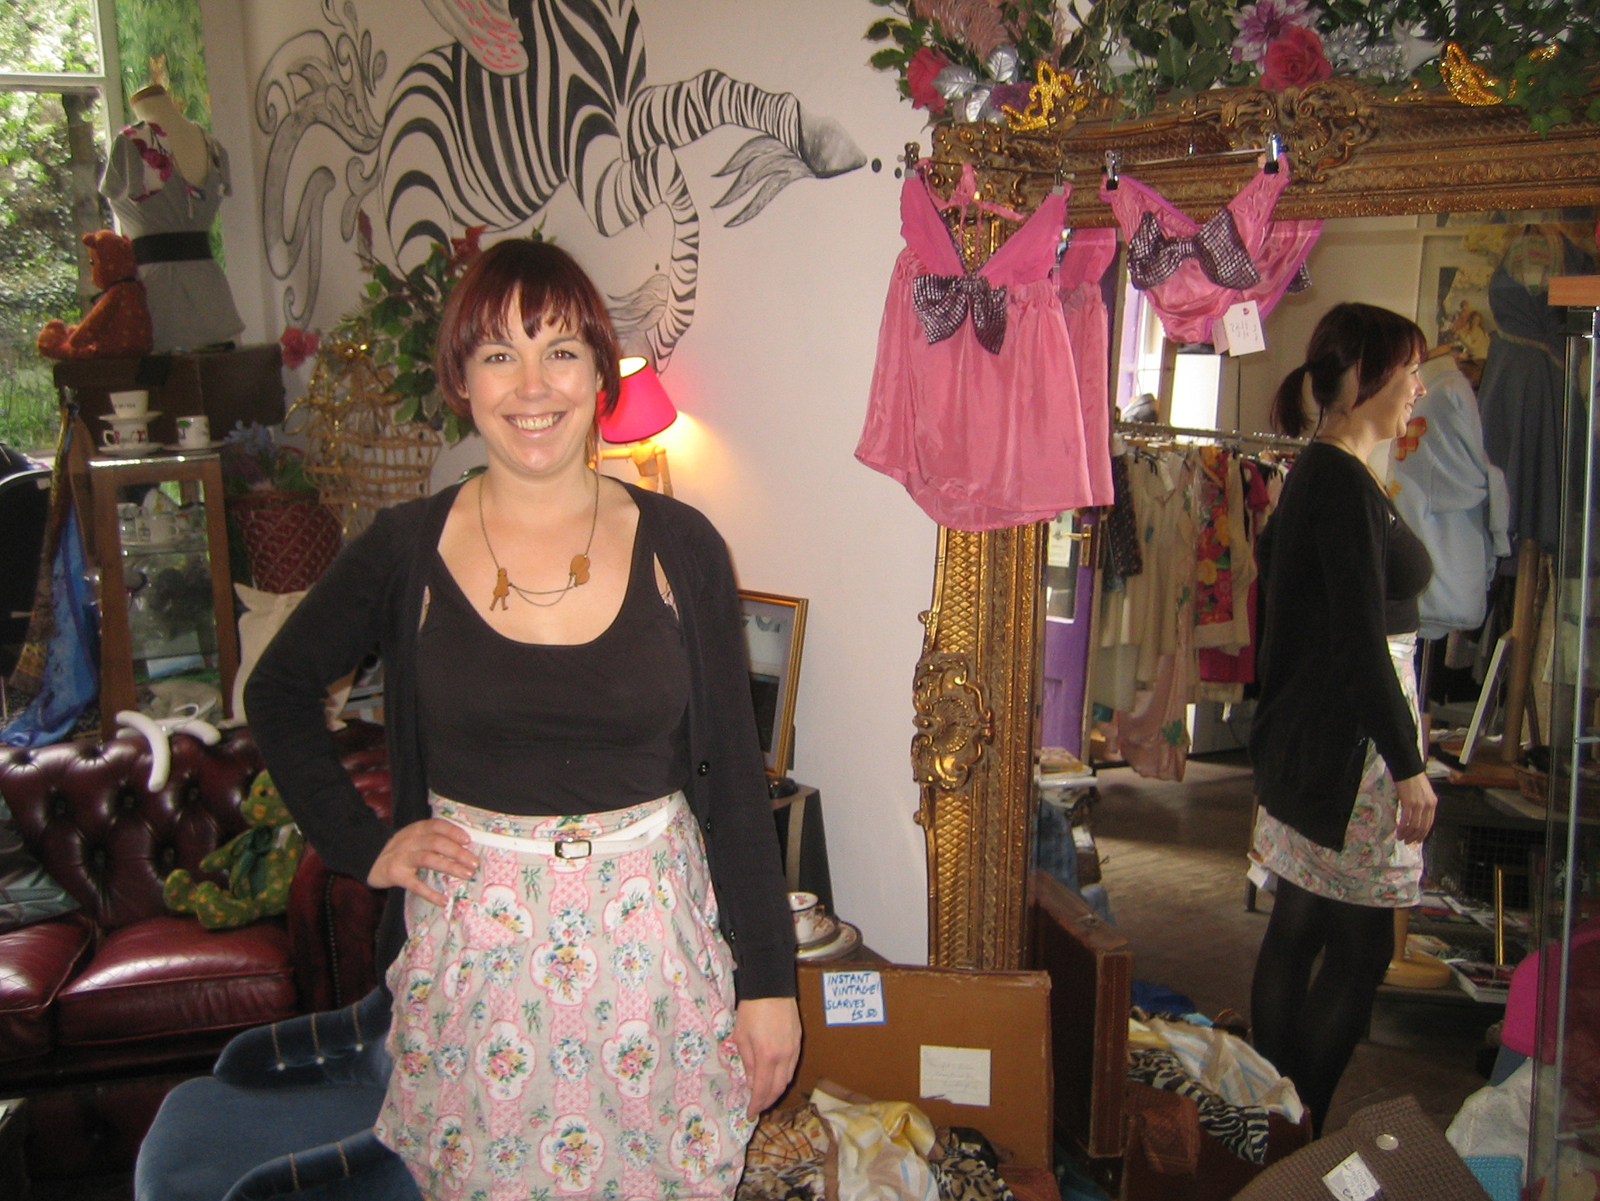 It was a rather cheery morning indeed as I popped in on Fleur Mackintosh and her vintage clothing and custom tailoring boutique, Godiva.